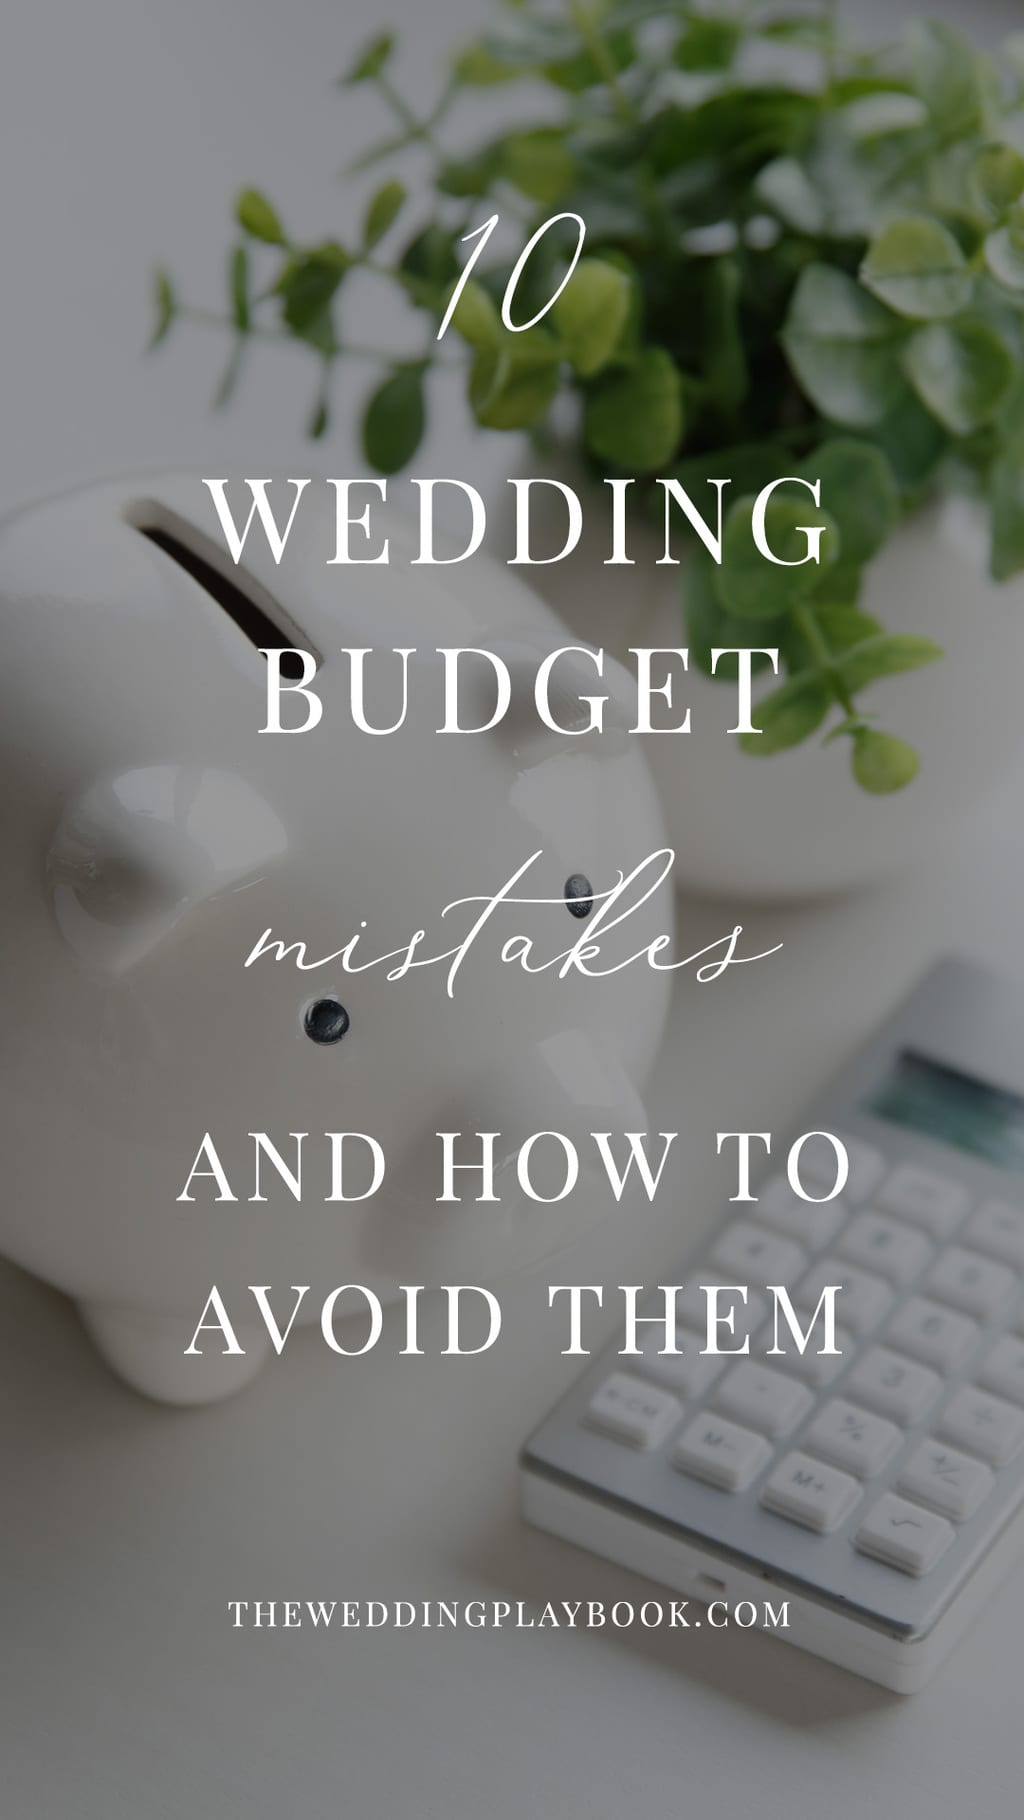 Top 10 Wedding Budget Mistakes (And How to Avoid Them!)